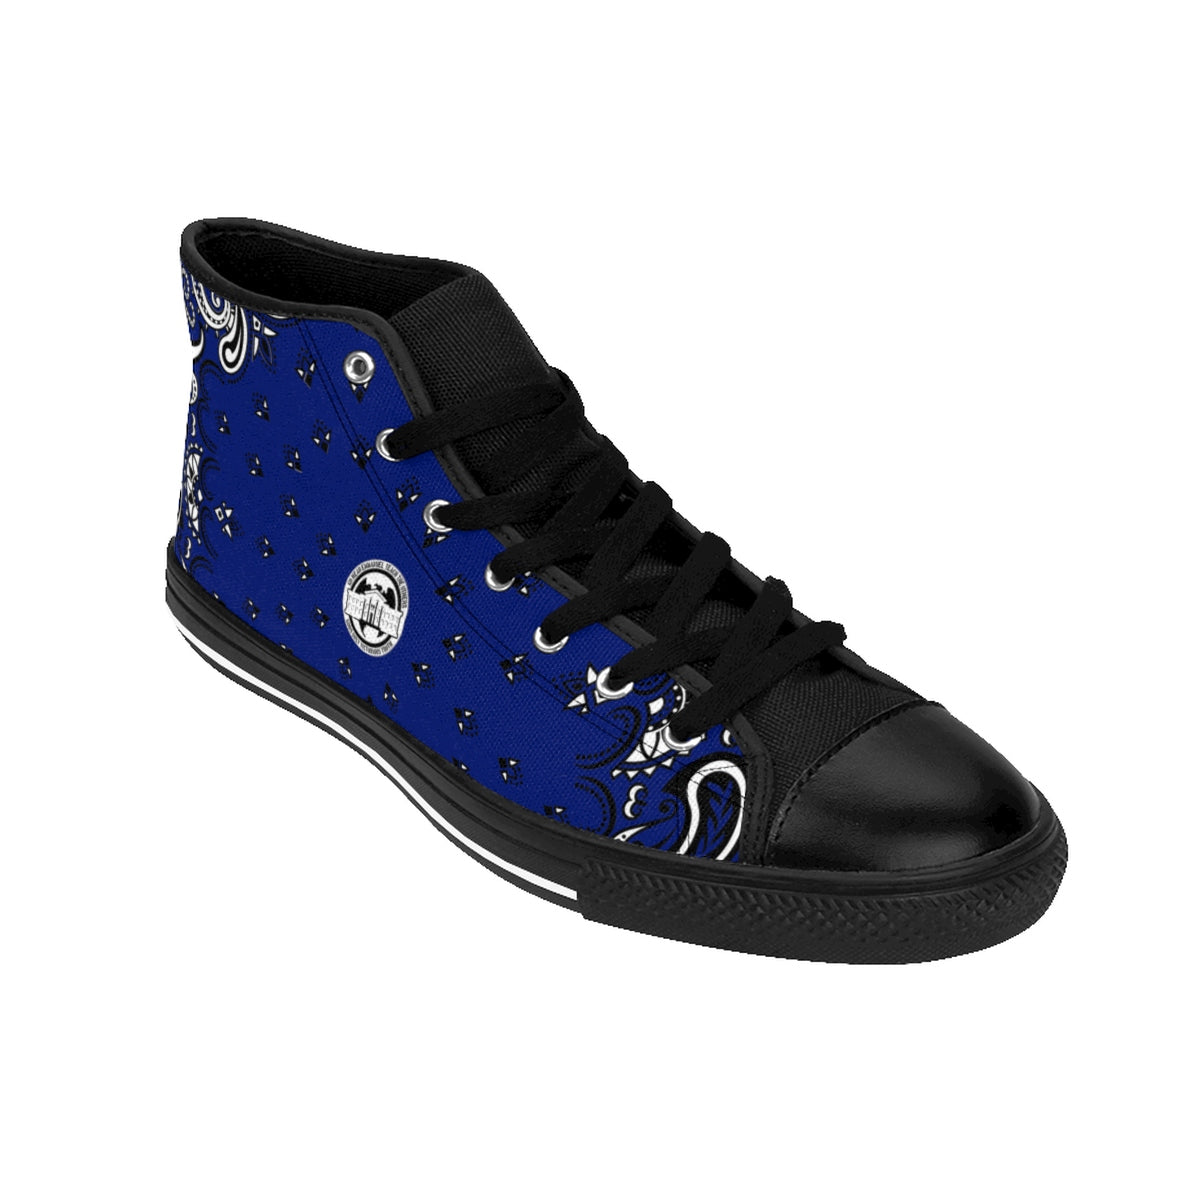 Ghetto Gov't Officialz Blue Bandana Logo Designer Shoes Heaven Razah / Hell Razah Kicks Men's High-top Sneakers